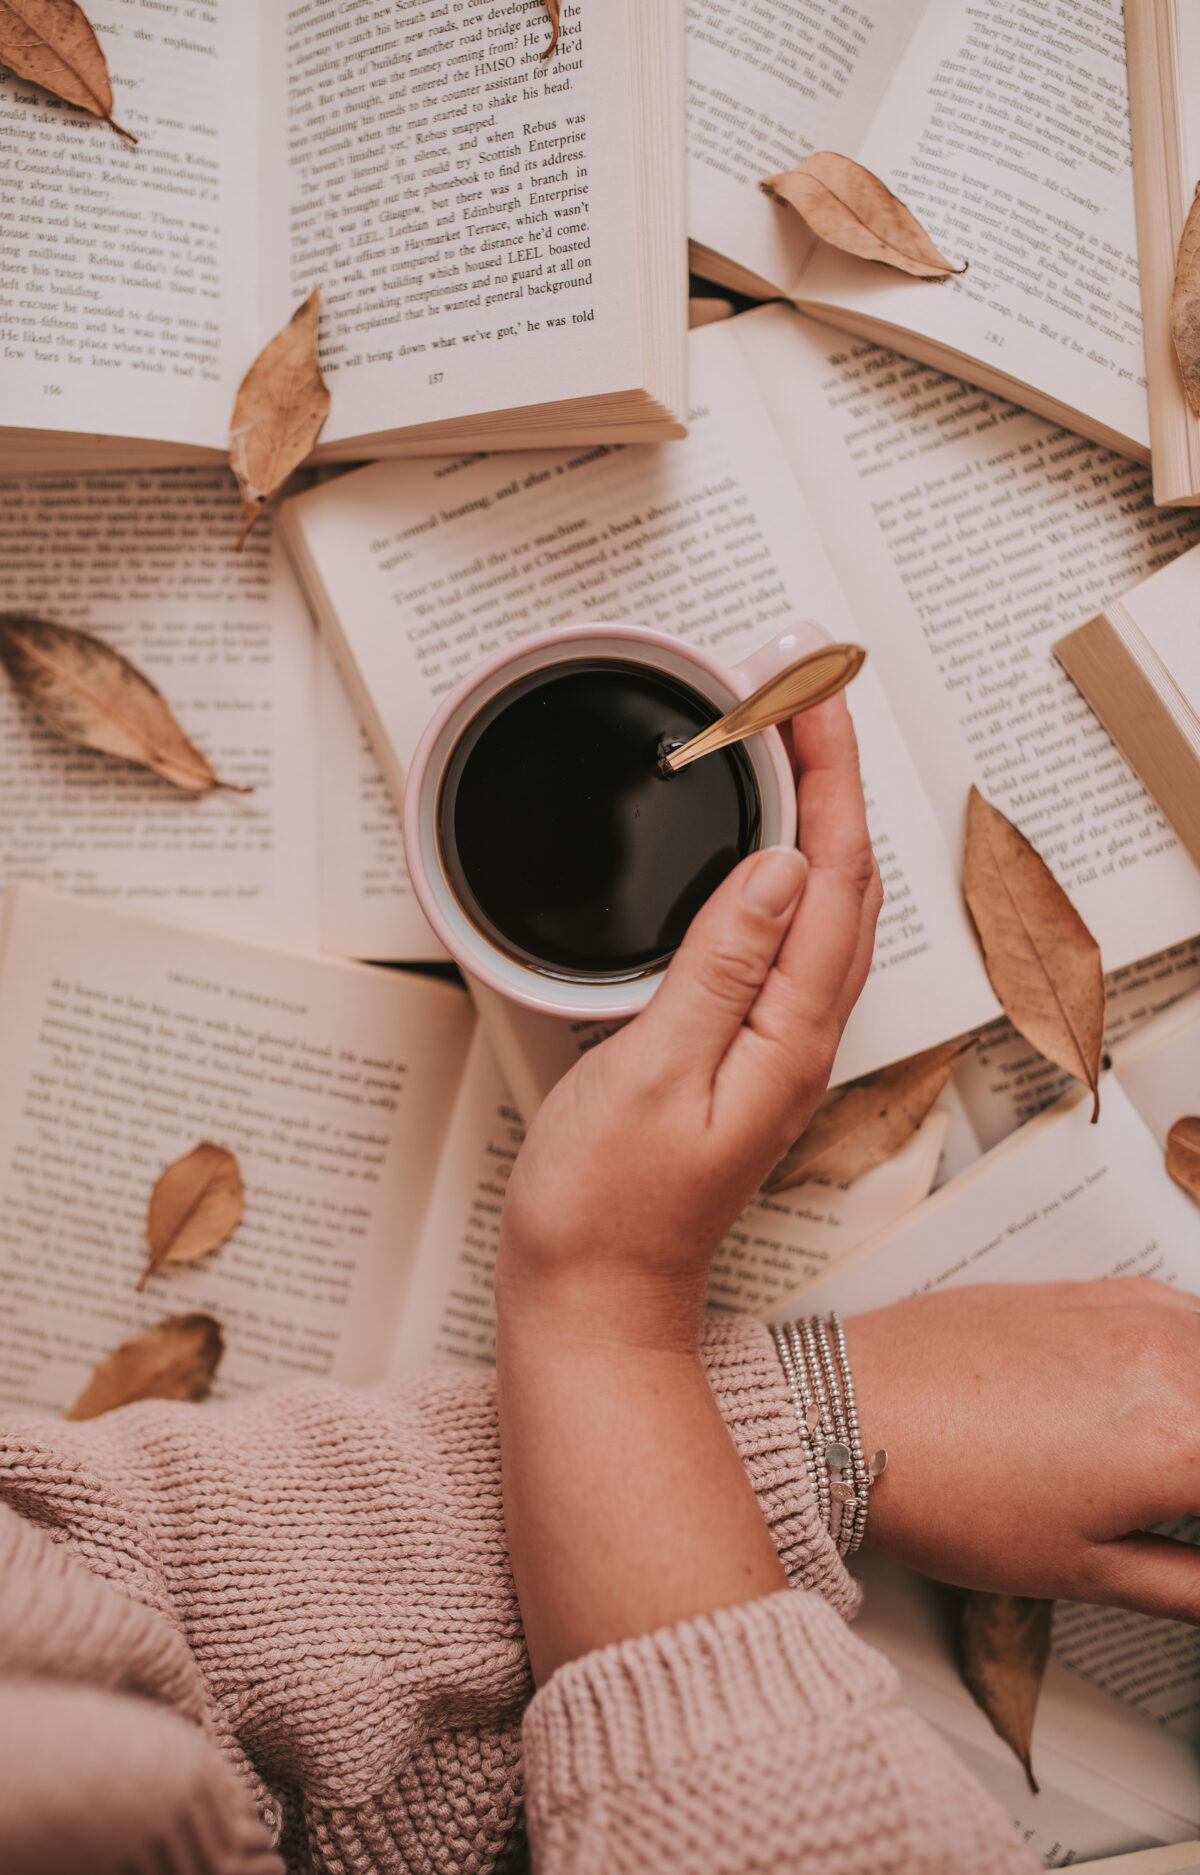 autumn book photography, open book pages, black coffe, pink knitwear sweater